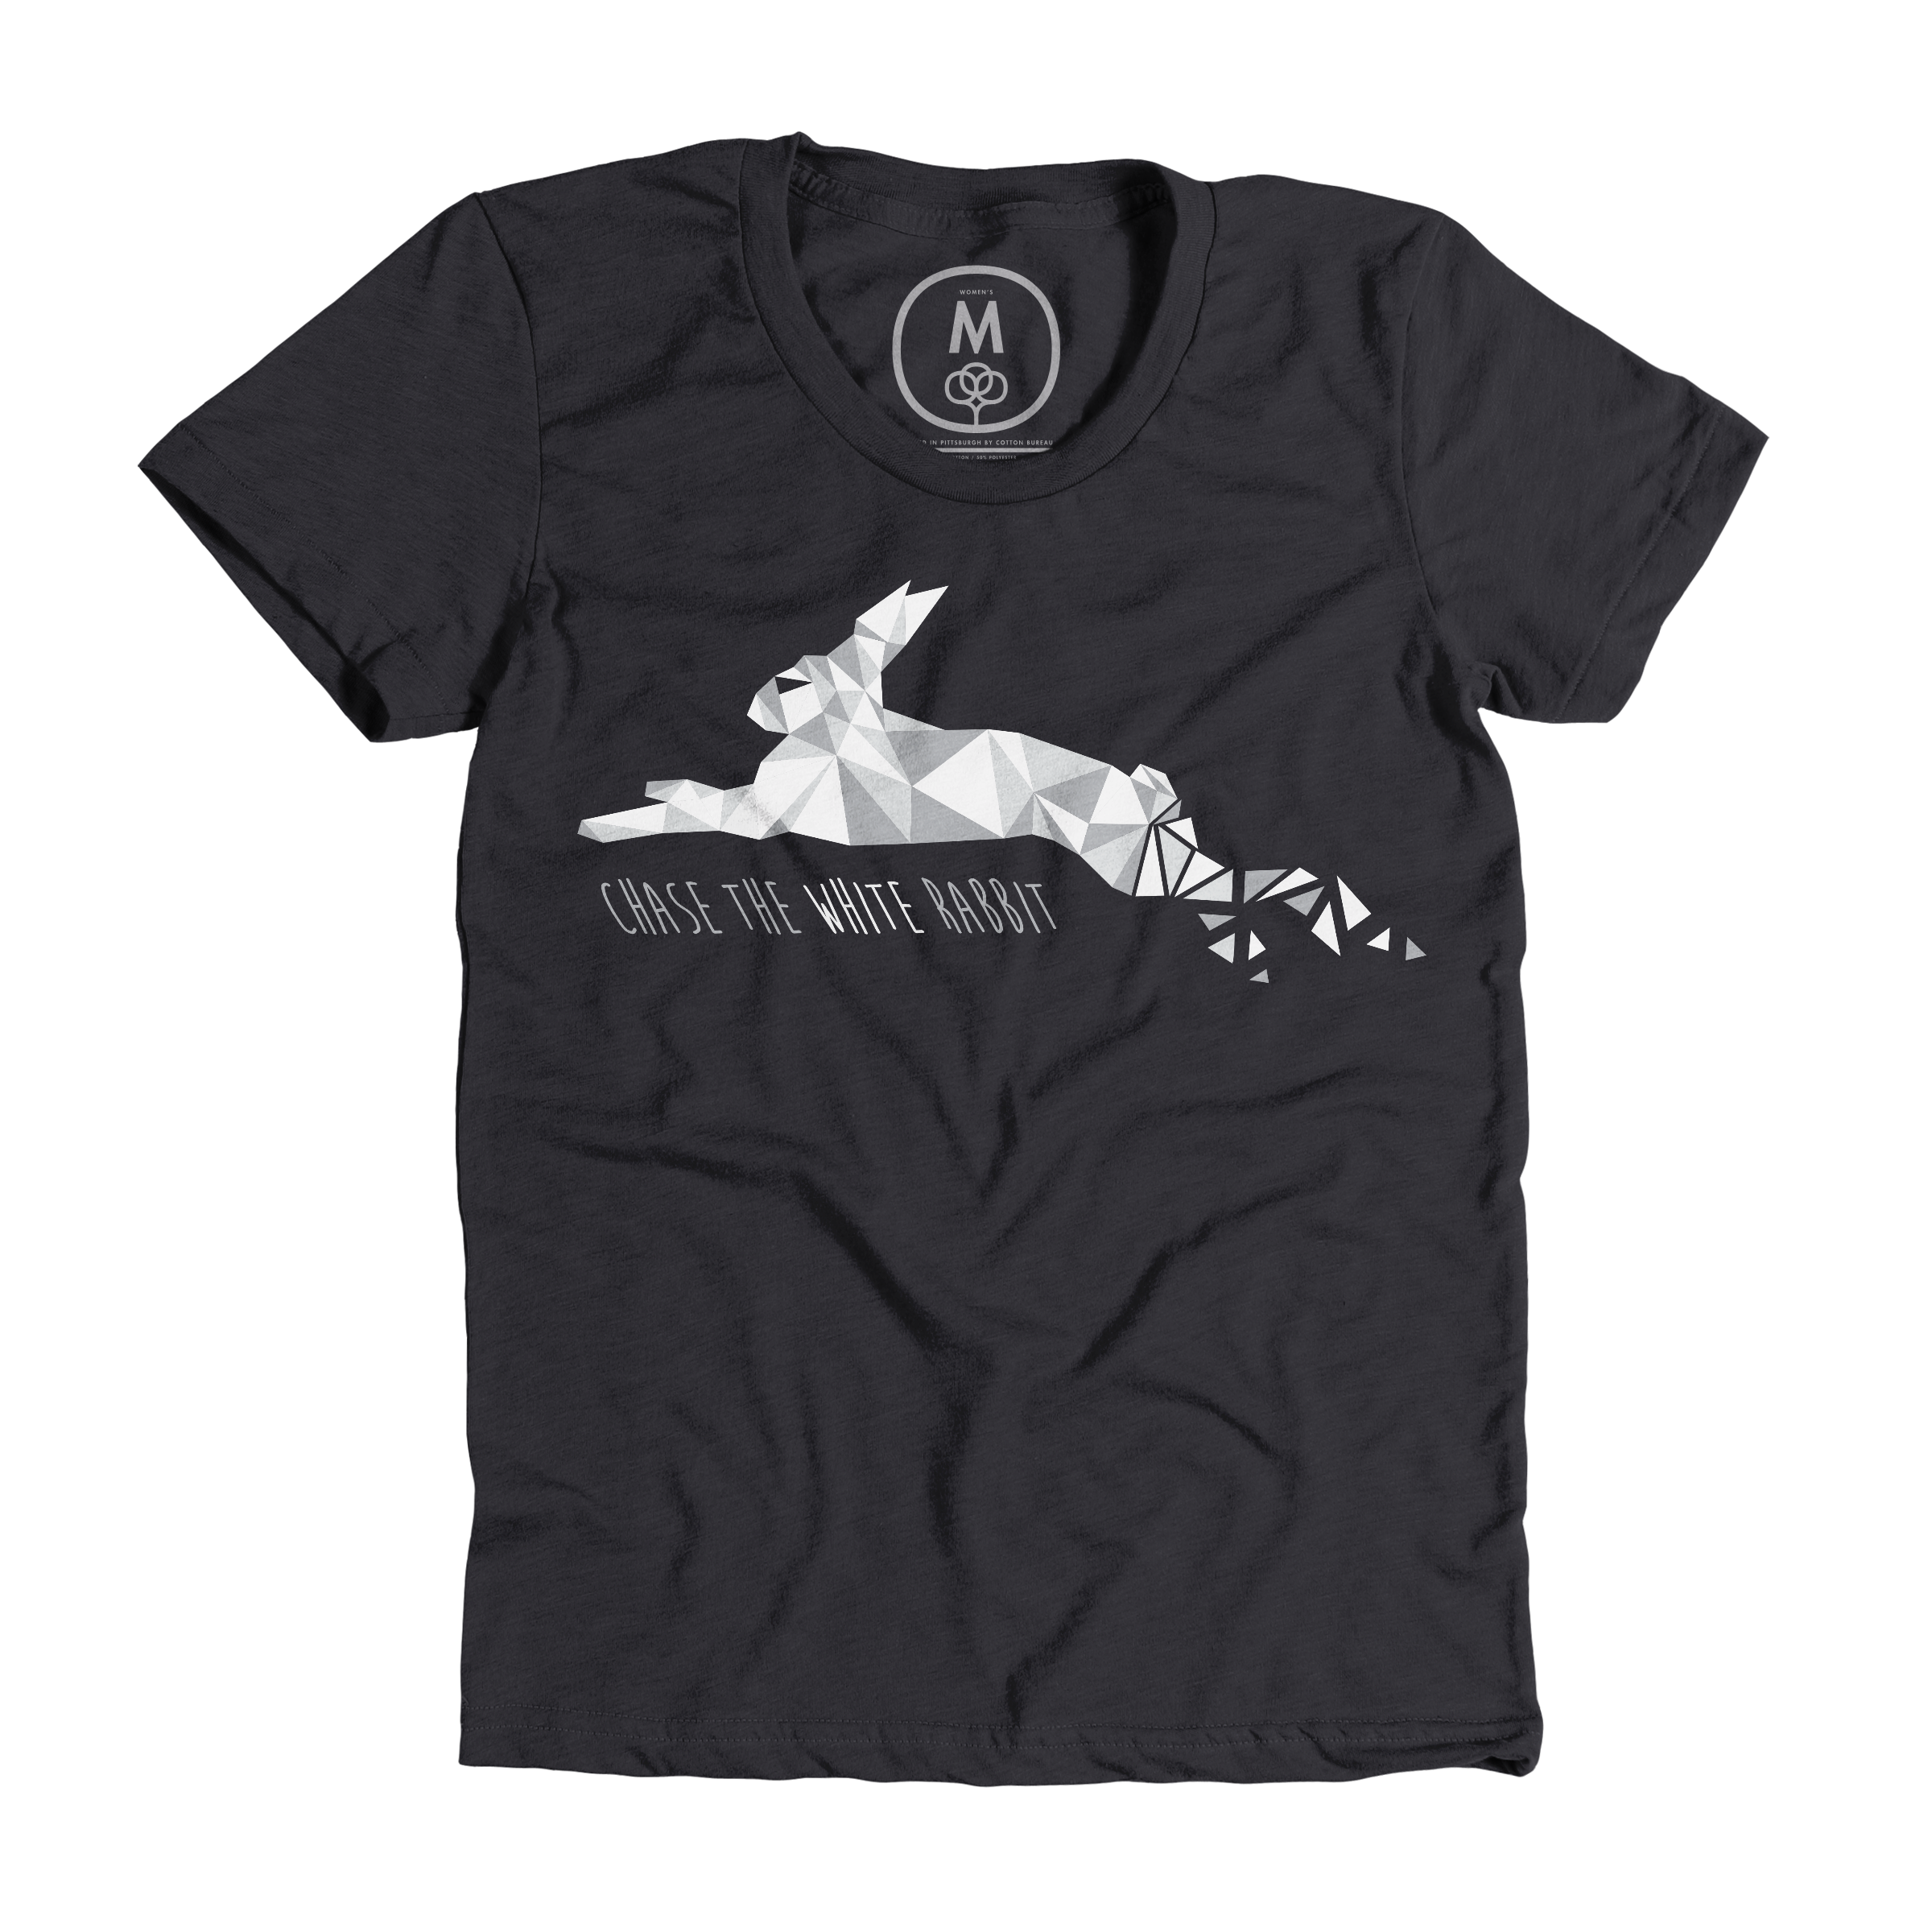 Chase the White Rabbit Charcoal (Women's)